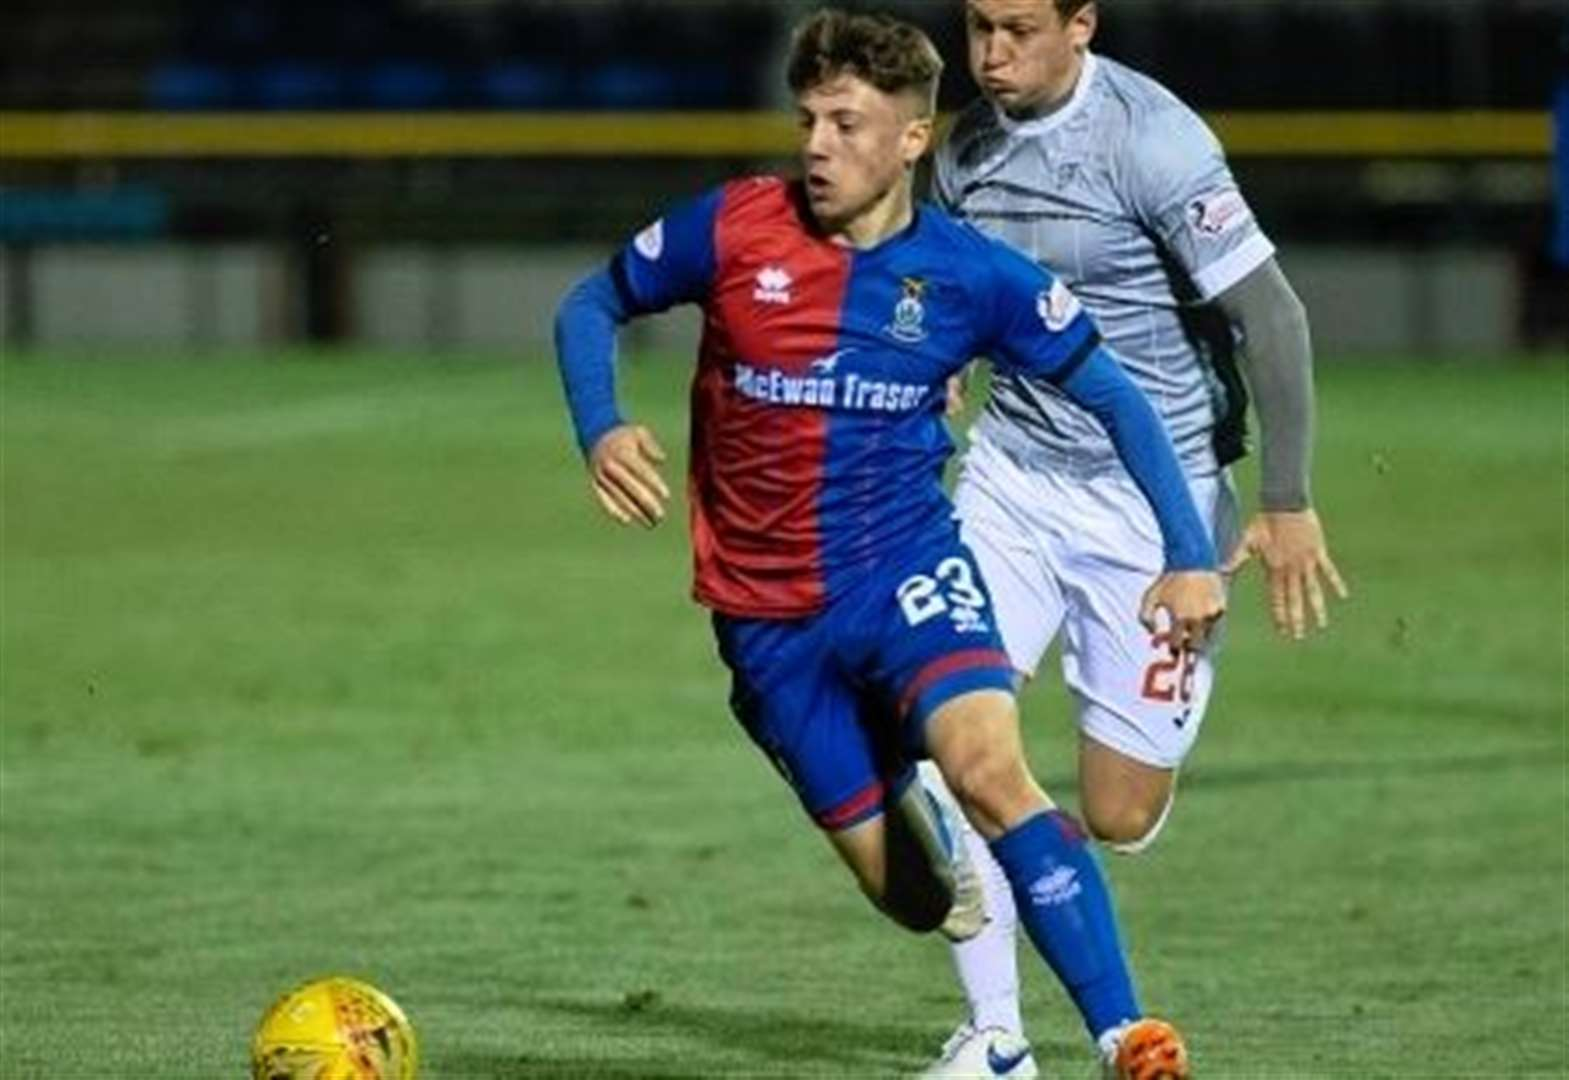 Caley Thistle teenager signs three-year deal